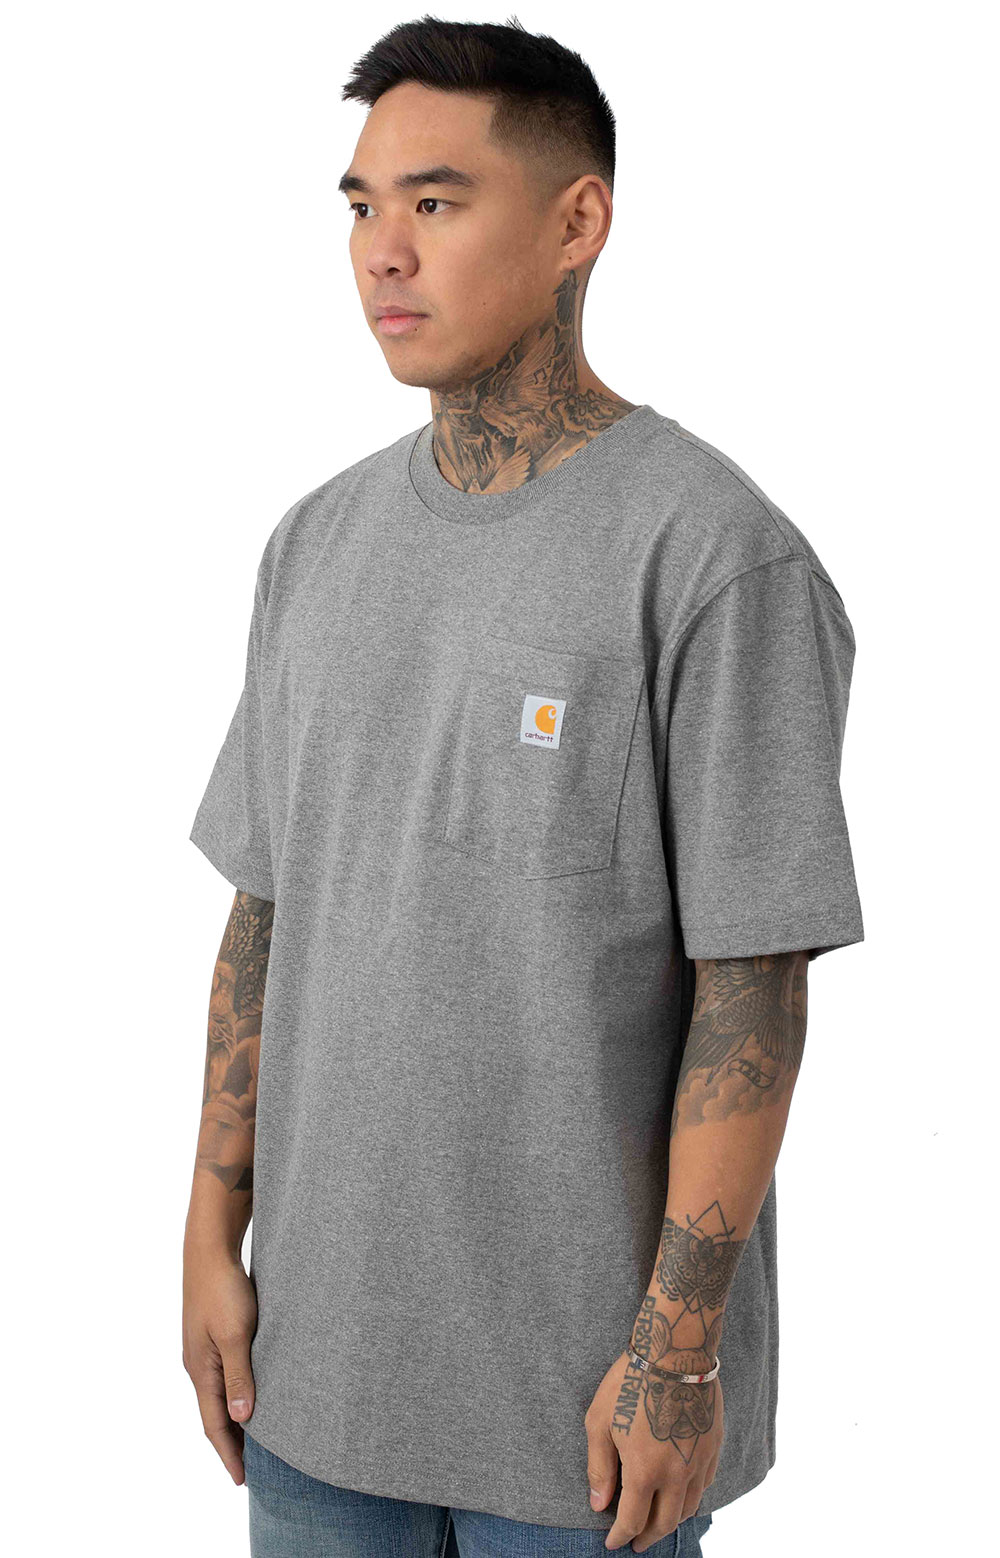 650a2eb2a6 ... Workwear C Logo Graphic Pocket T-Shirt - Granite Heather. Thumbnail 1  Thumbnail 1 Thumbnail 1